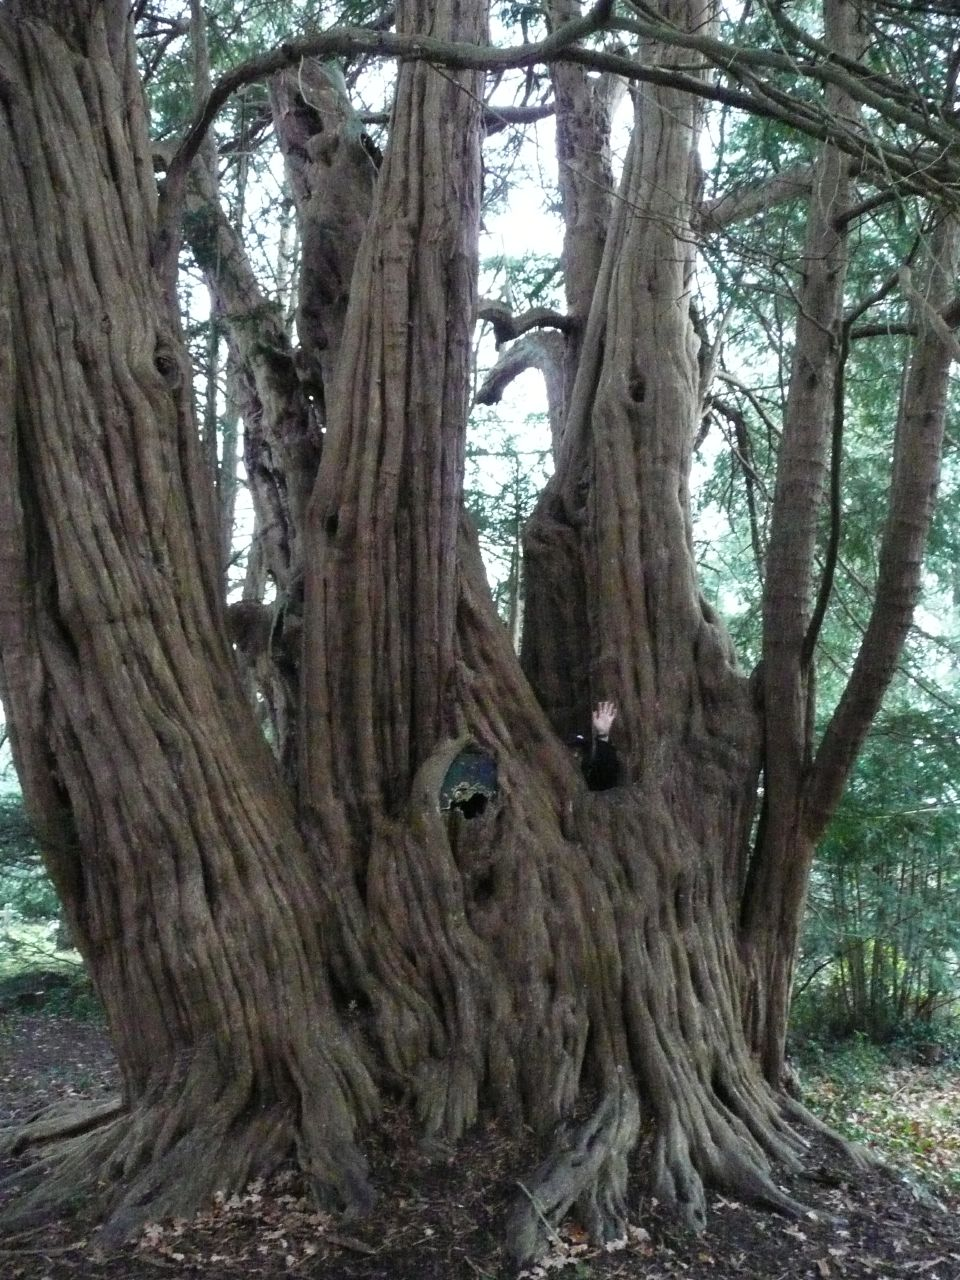 Book 3, Walk 2c, Woldingham to Oxted One of east Surrey's voracious Yew trees, here seen consuming a hapless walker whole, 1 Jan 2008.